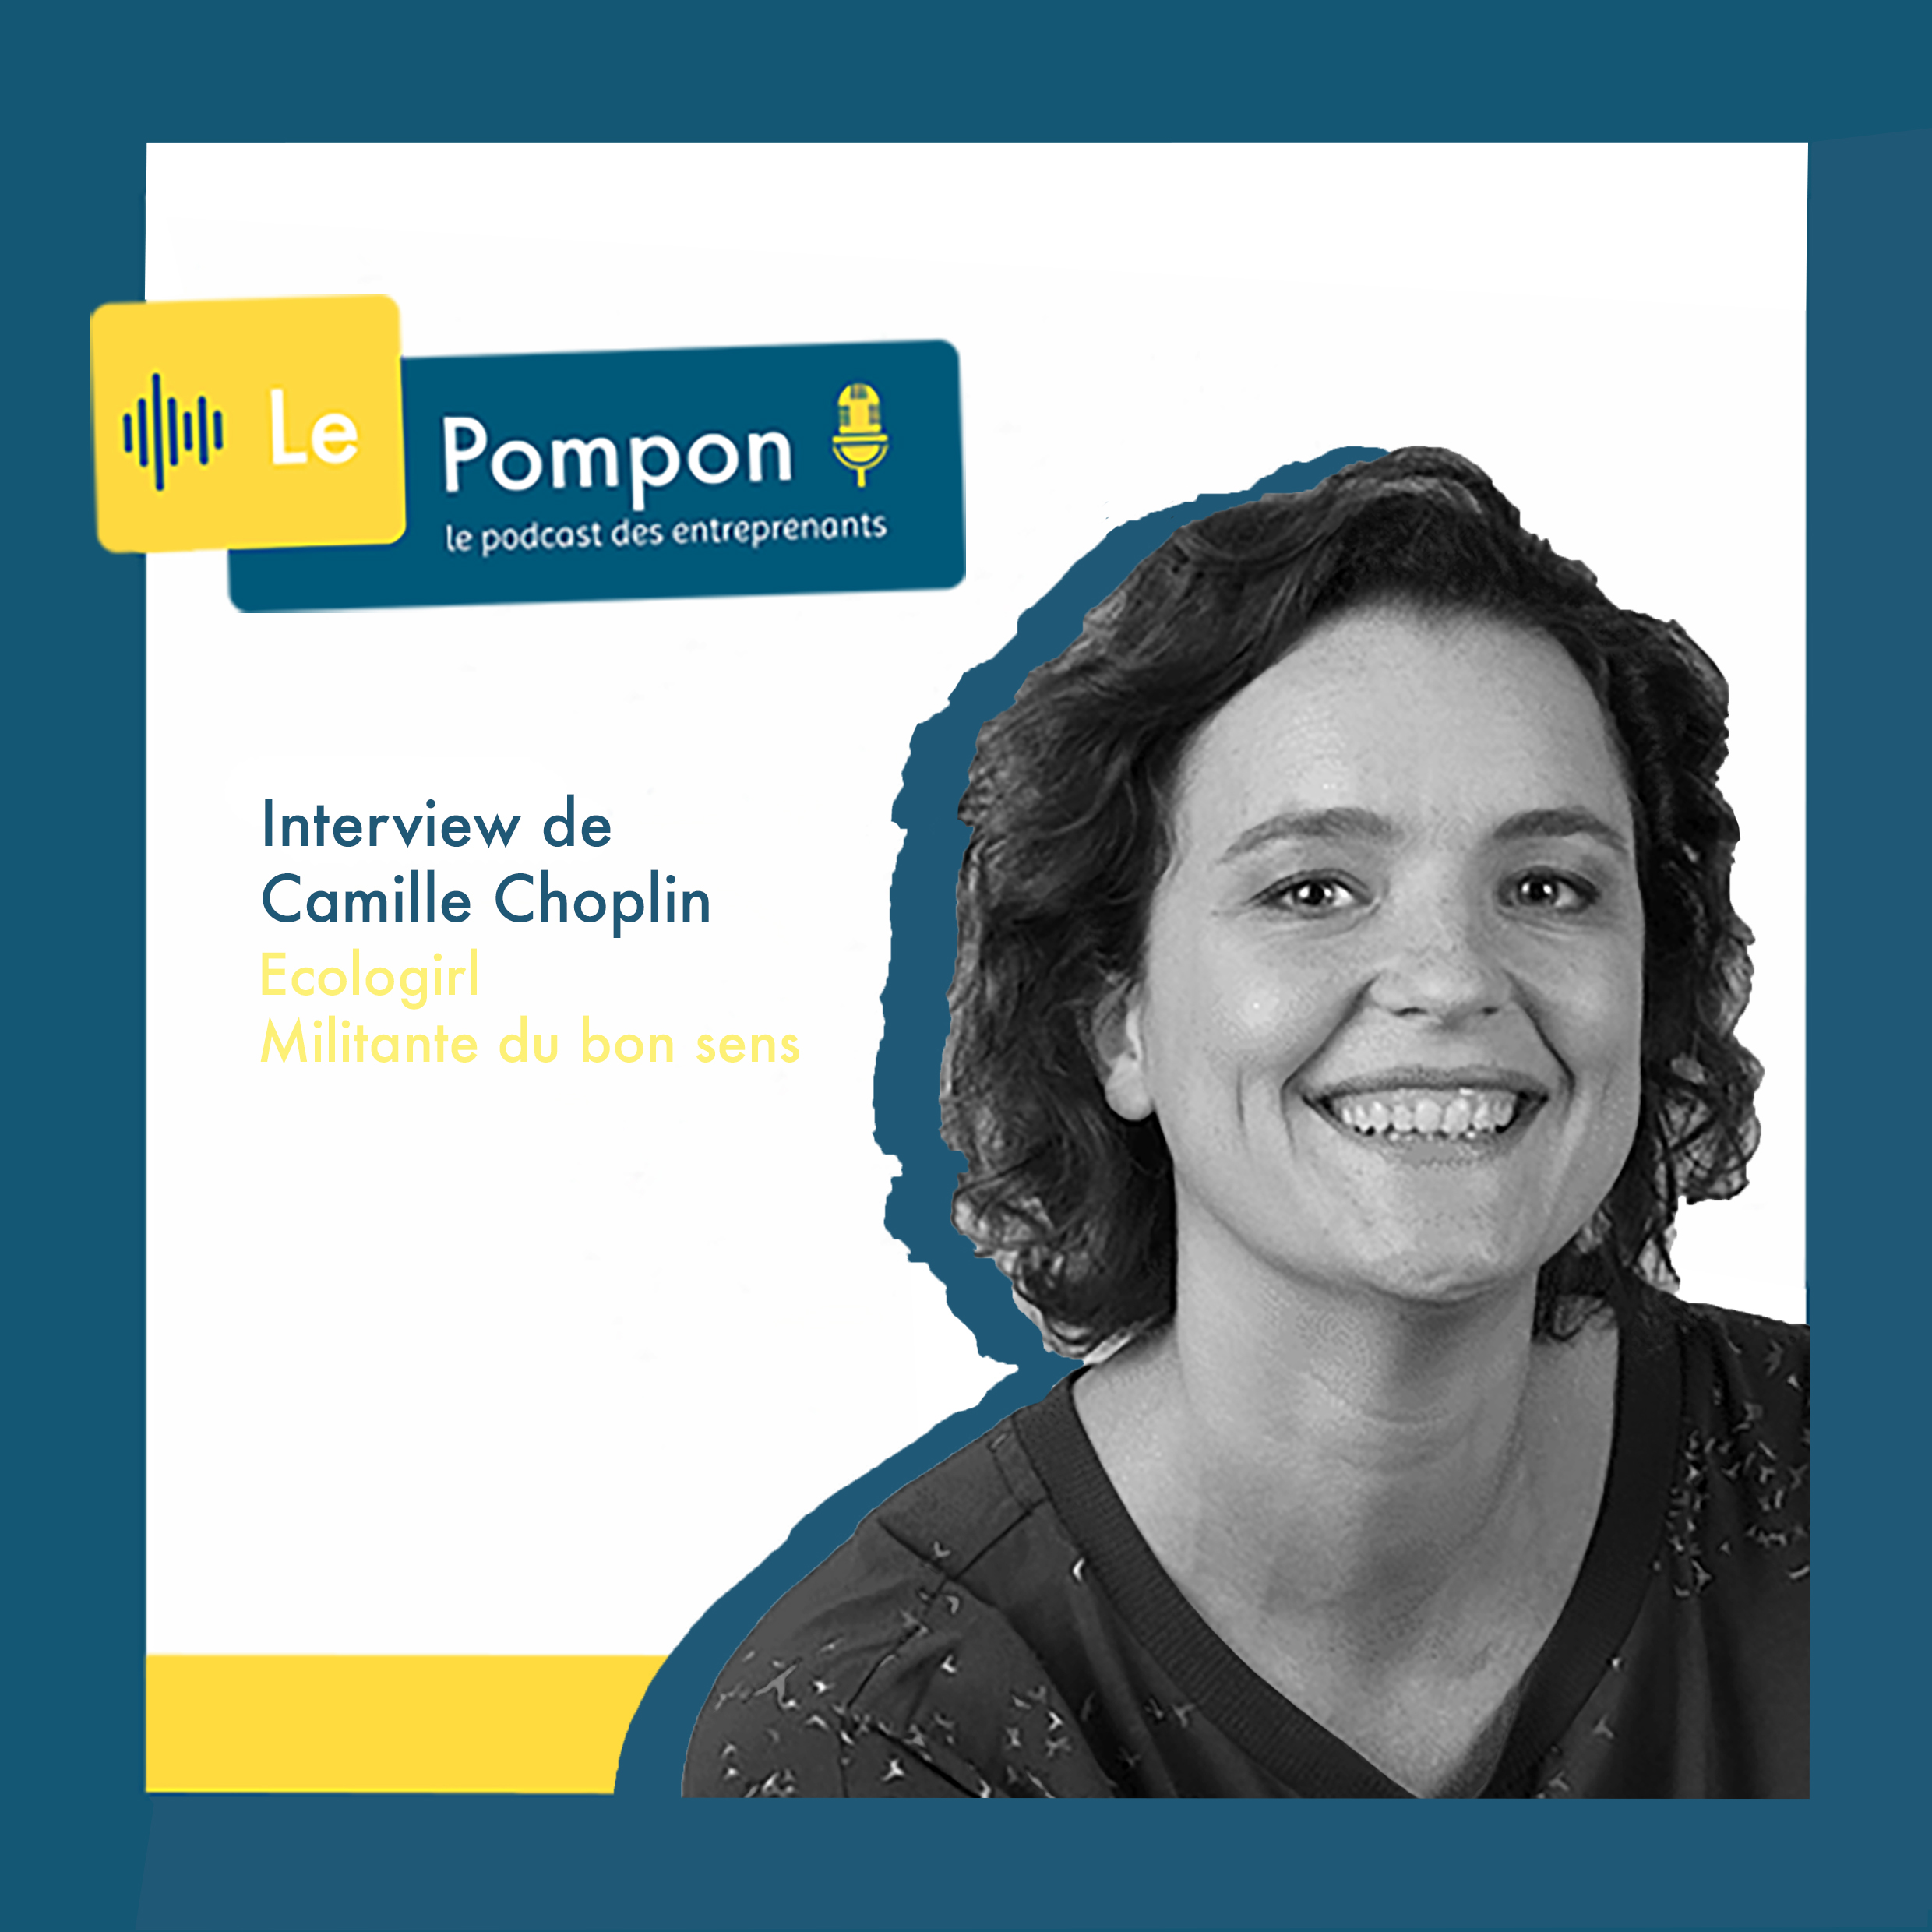 Illustration de l'épisode 15 du Podcast Le Pompon : Camille Choplin, Écologirl